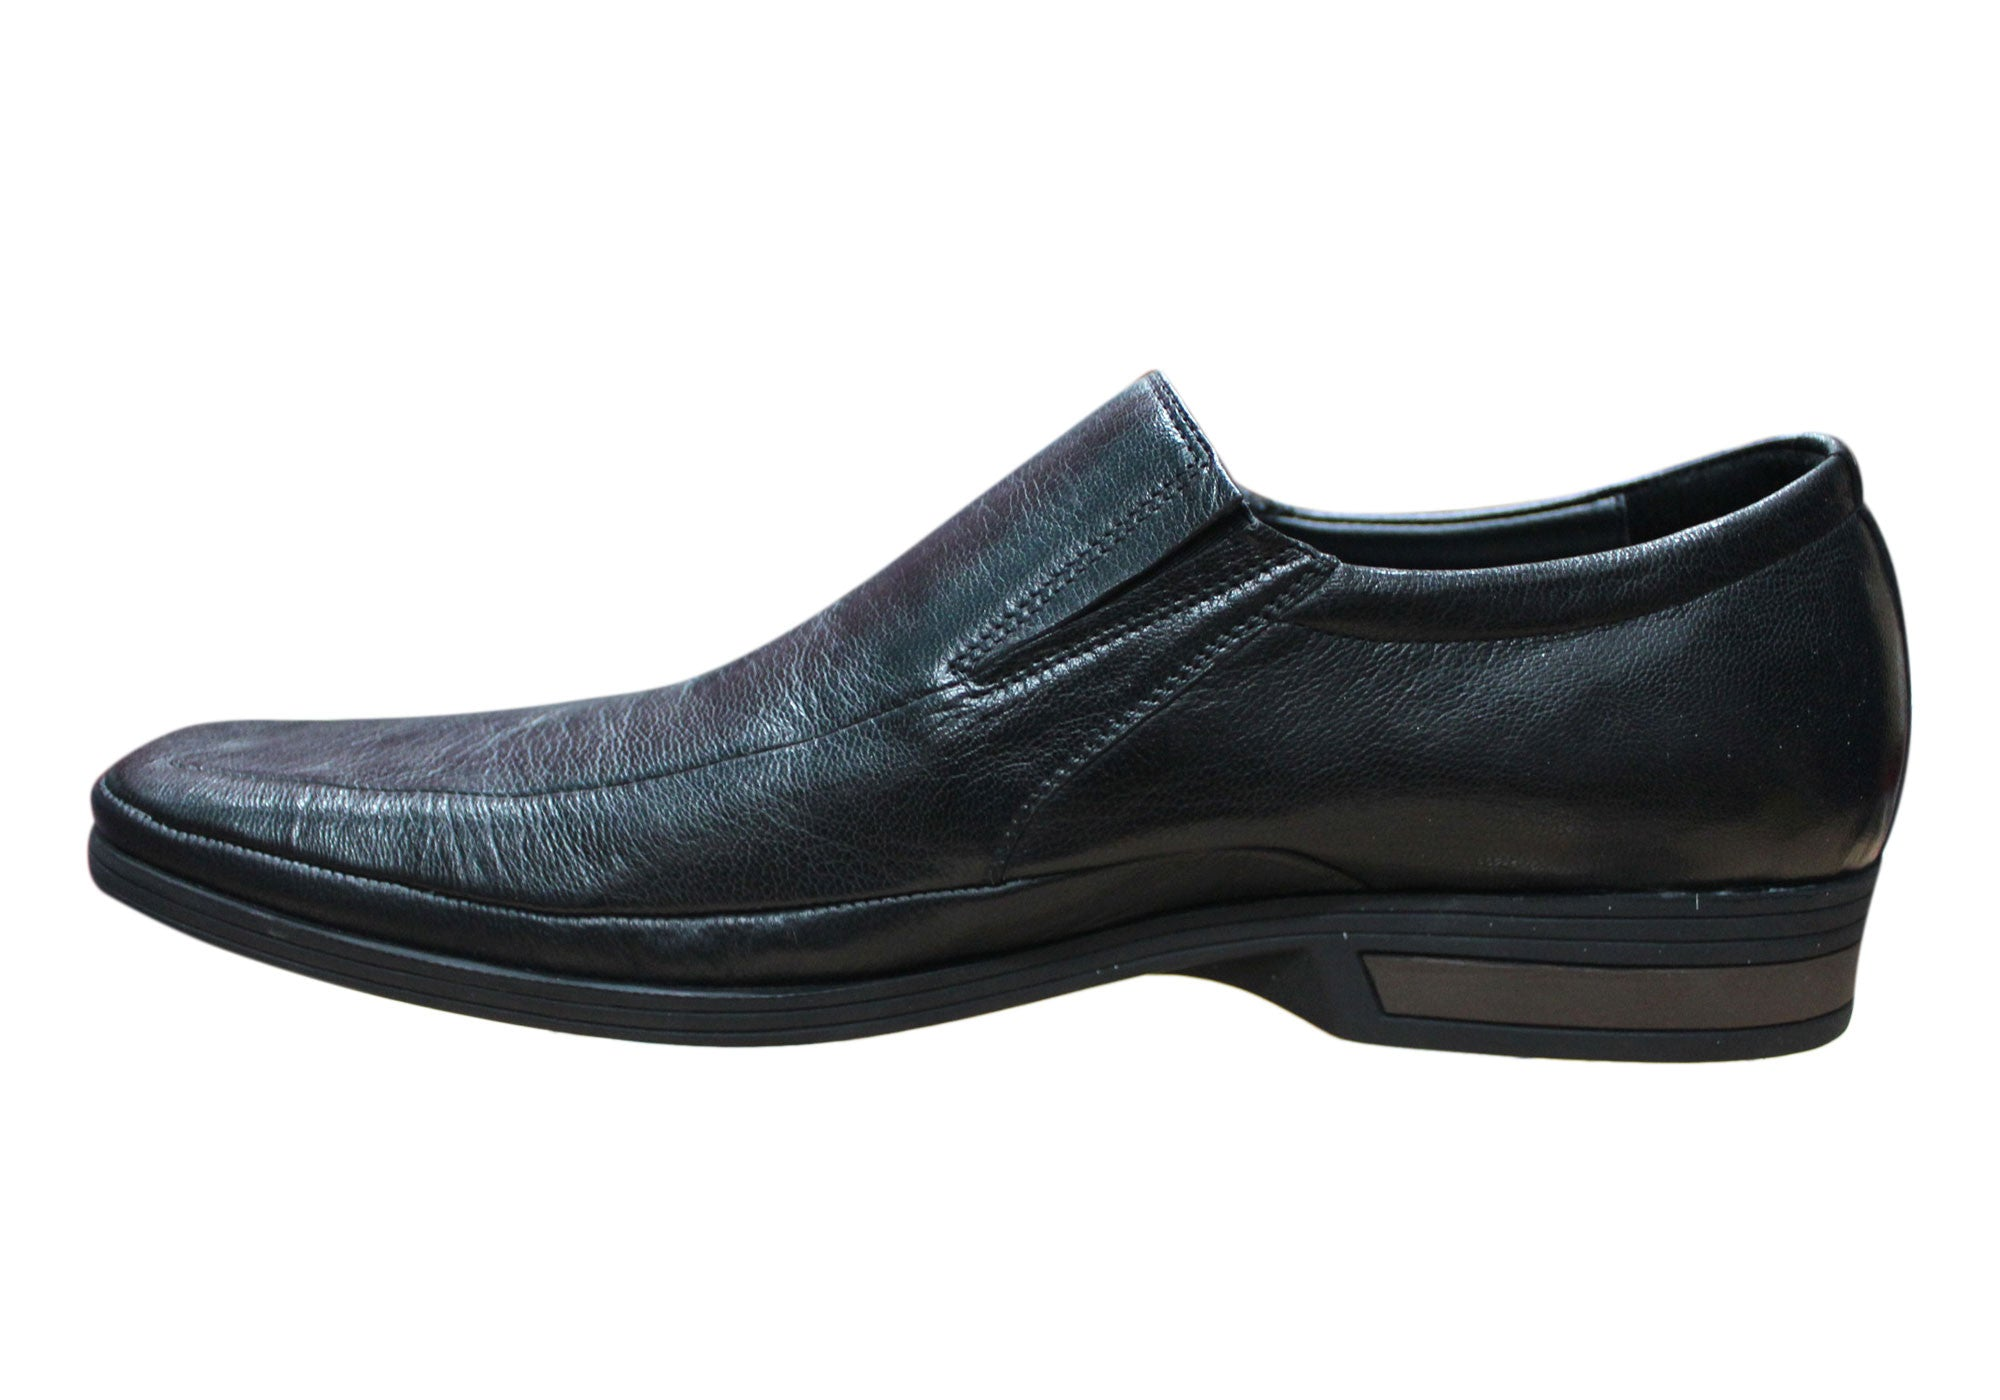 Florence Cameron Mens Leather Comfort Dress Shoes